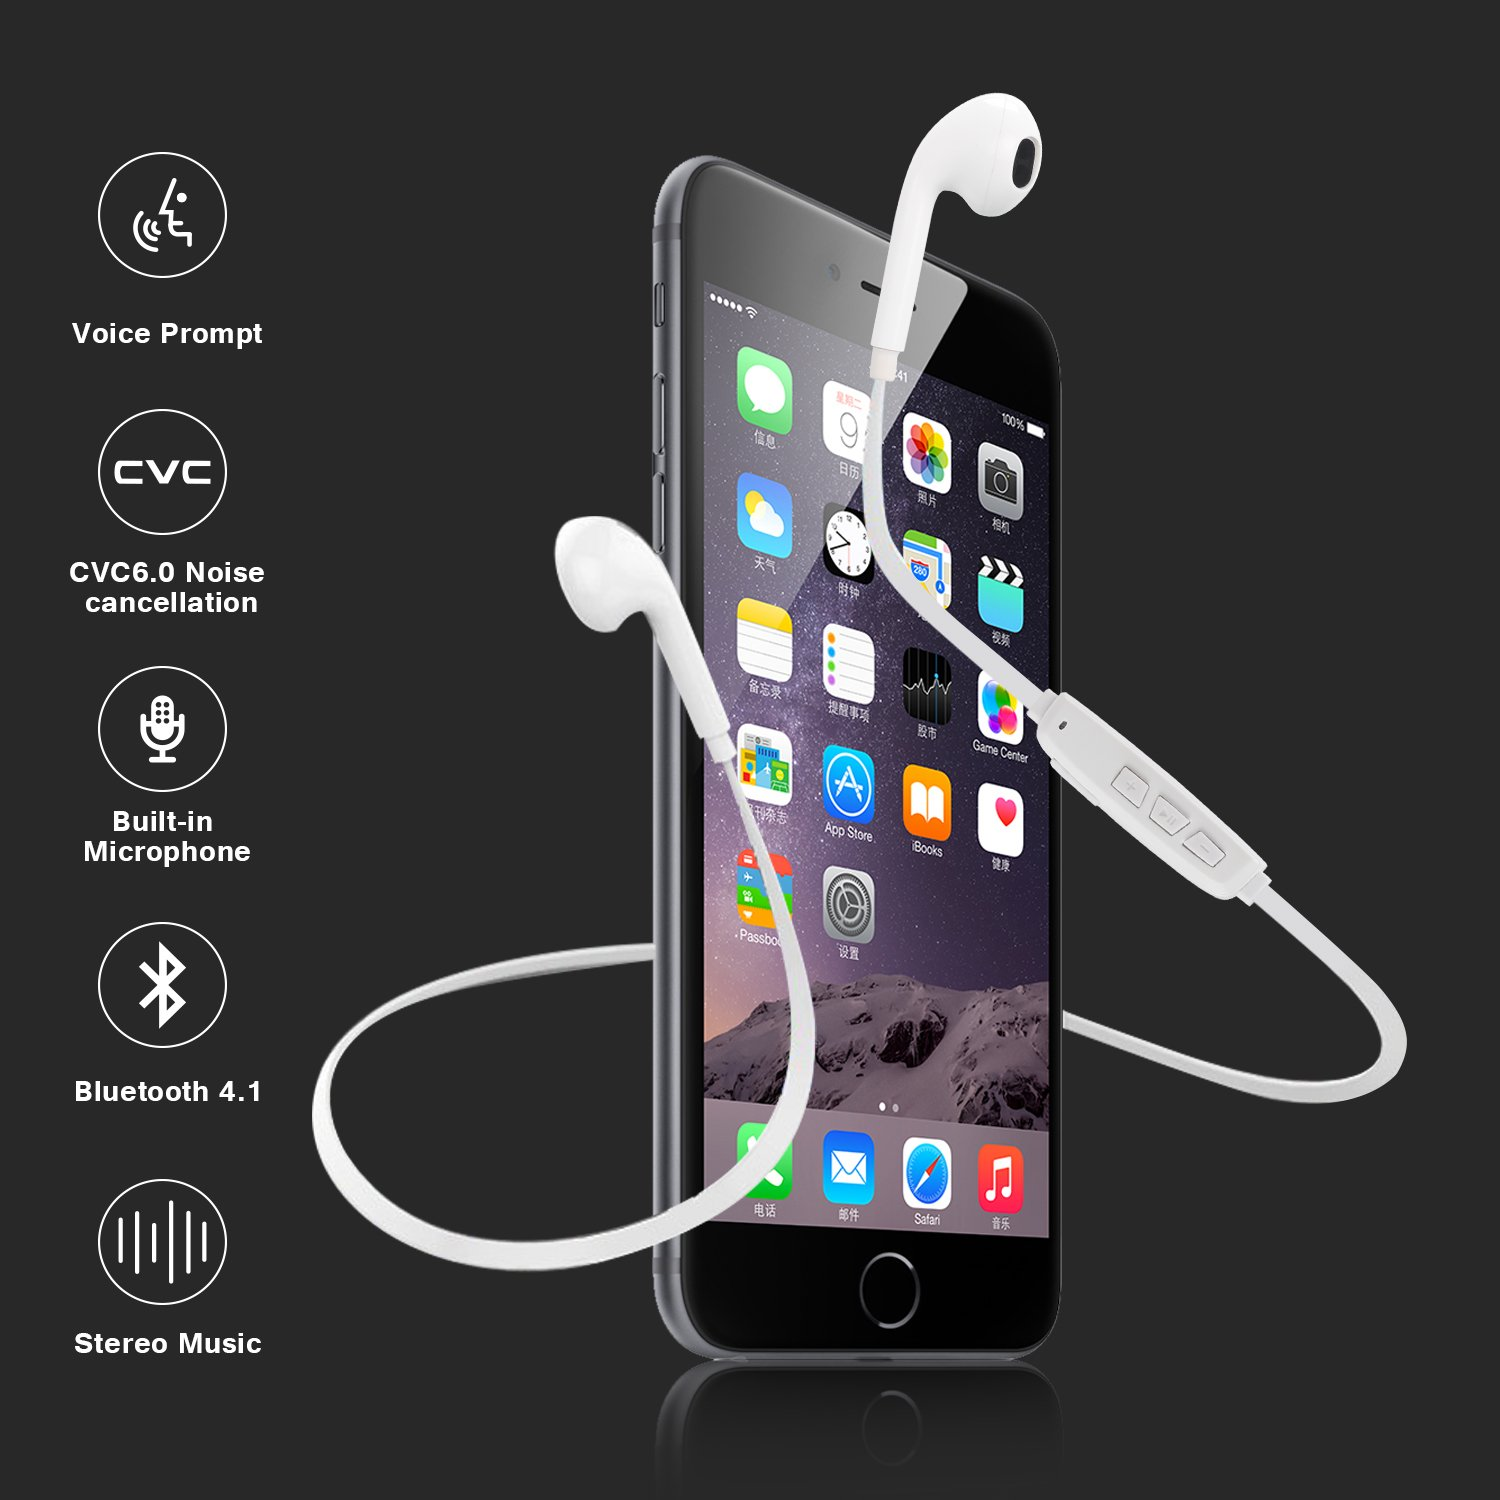 Bluetooth Headphones, Parasom A9 In-Ear Wireless Earbuds, Sweatproof Stereo Bluetooth Earphones, Noise isolation with Mic, Secure-Fit, Comfortable & Lightweight (White)